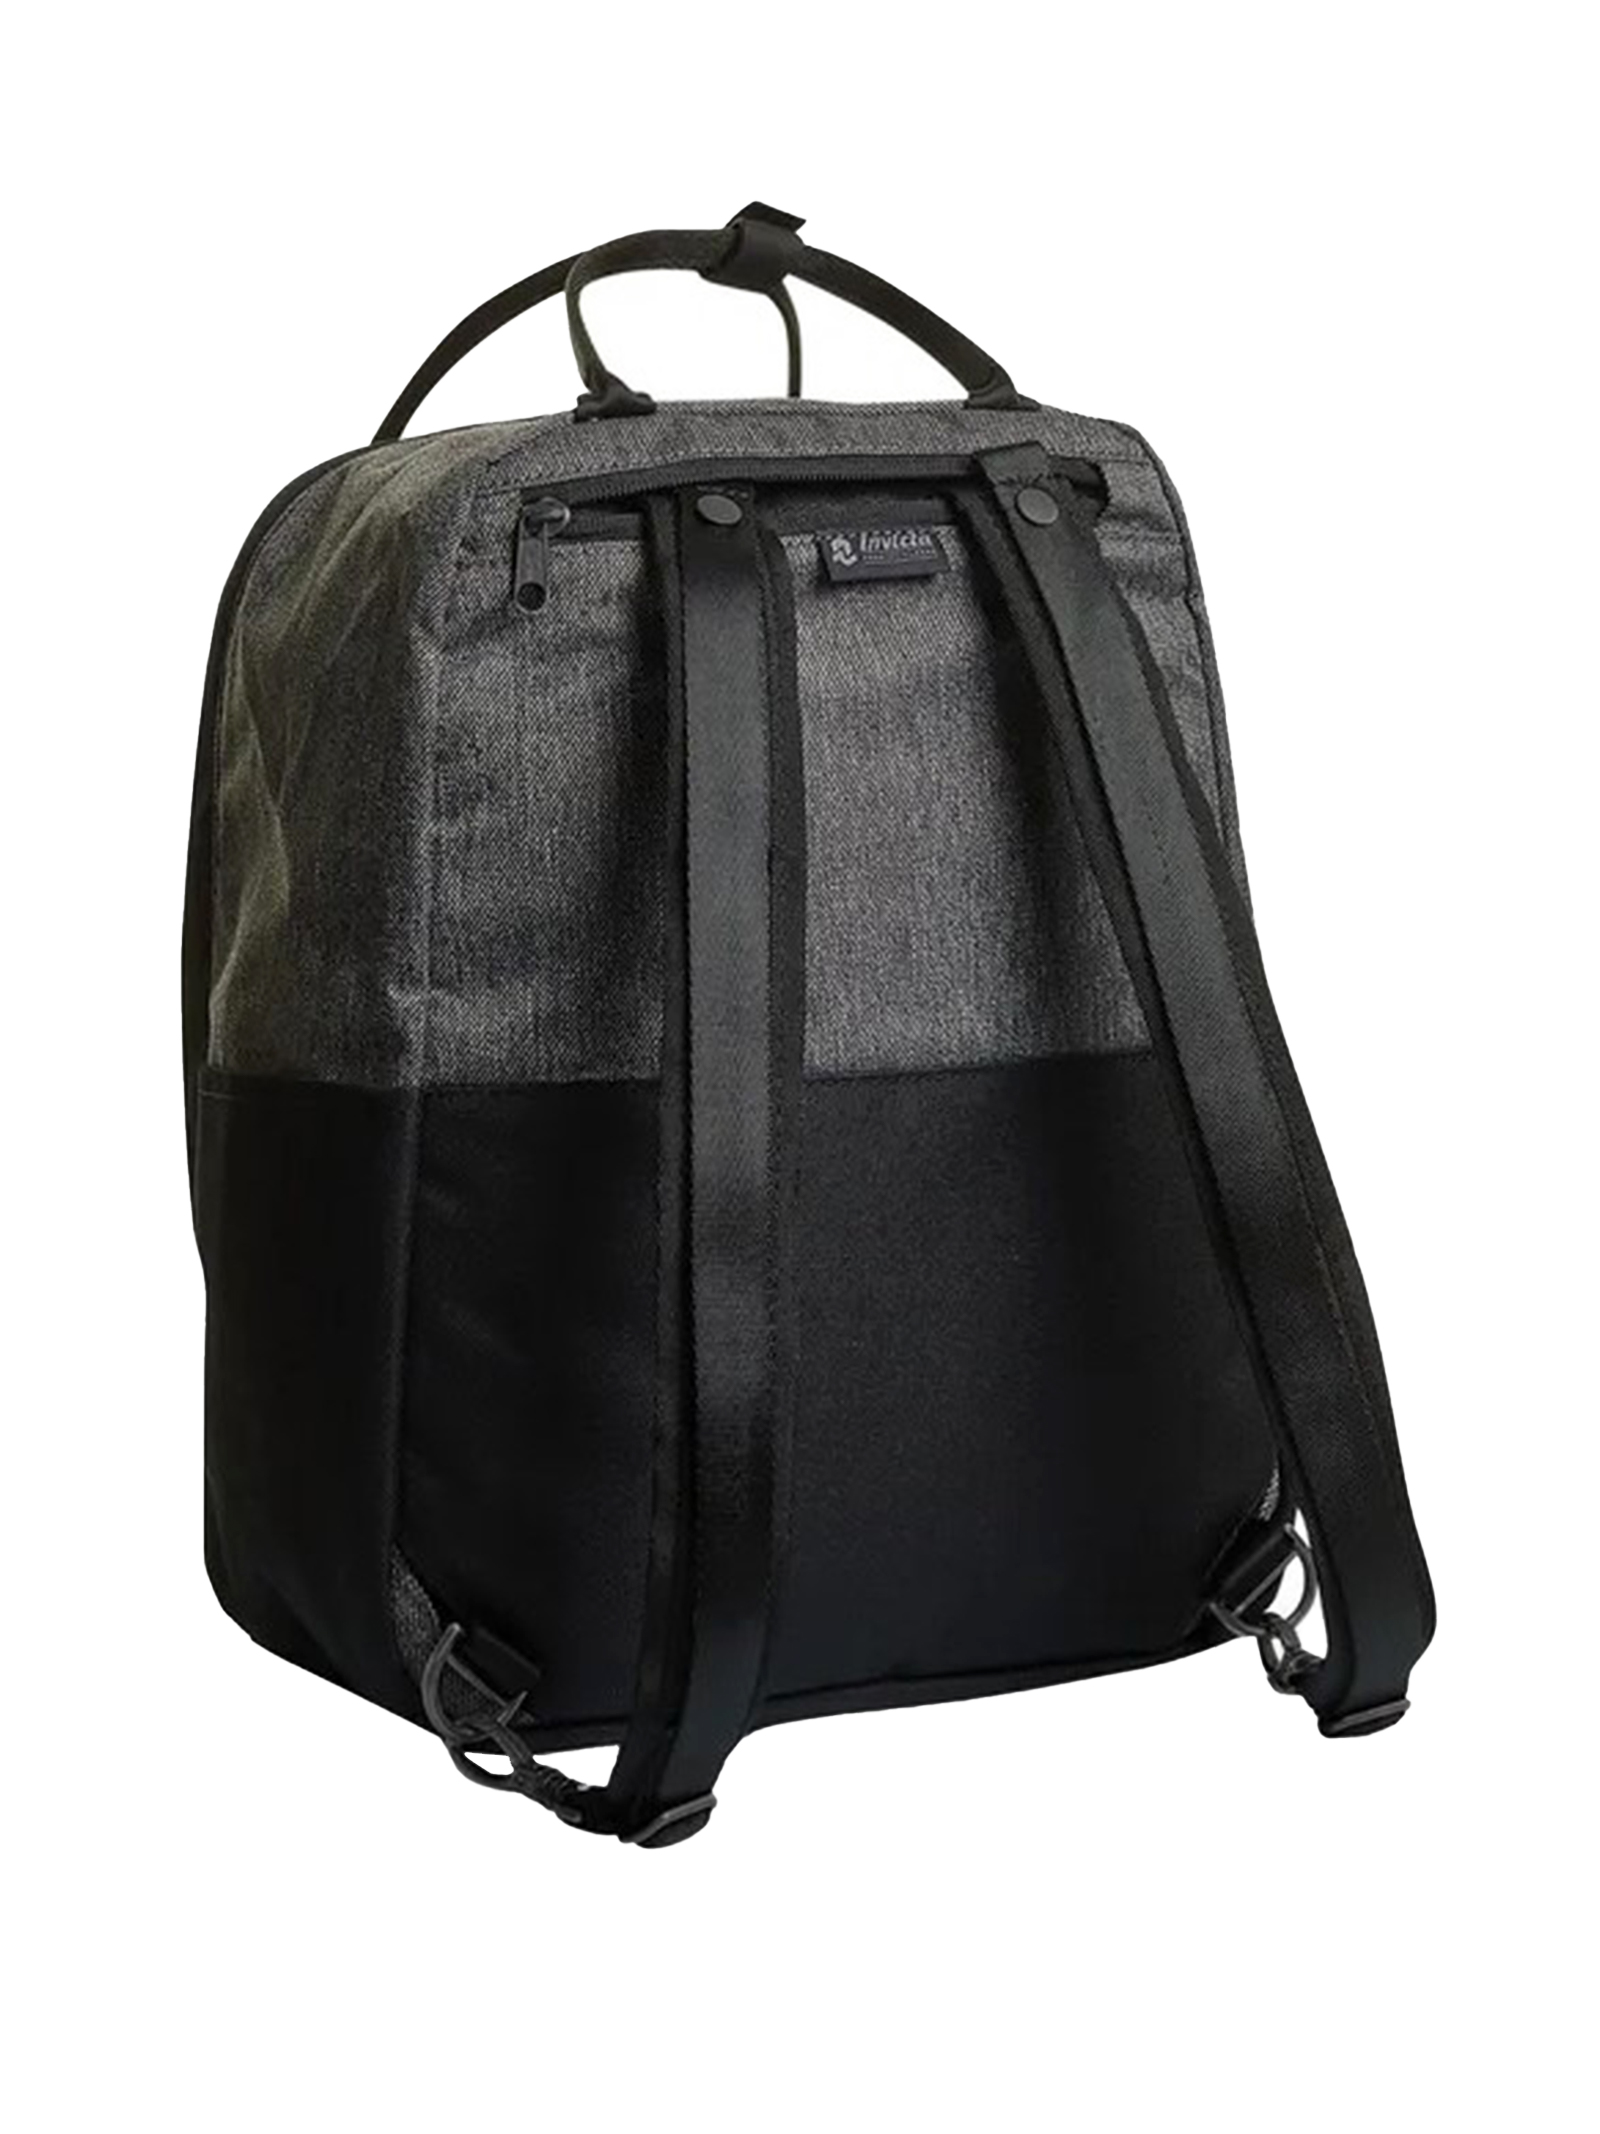 Unisex Icon Collection Shylla Black Monochrome Backpack with Padded Back and Shoulder Straps 206002115 Invicta | Bags and backpacks | SHYLLA PREMIUM899